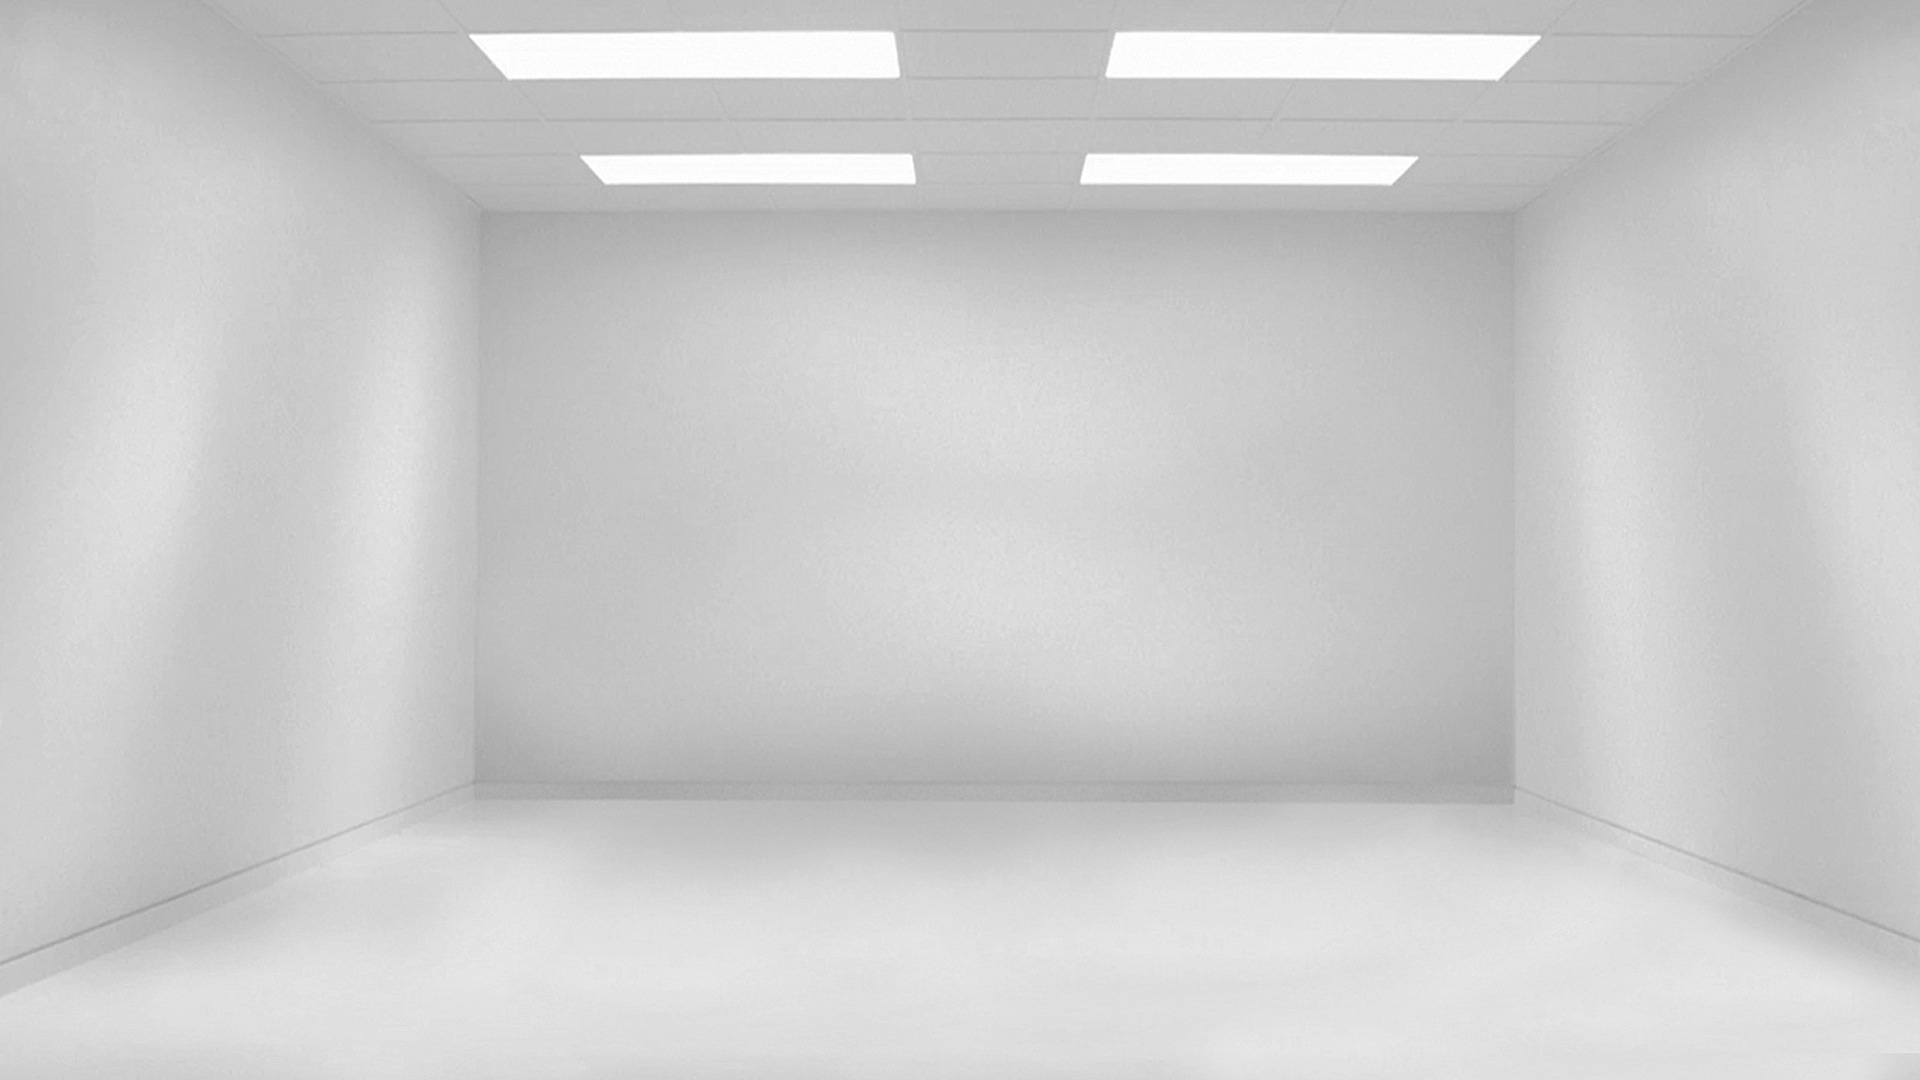 White wallpapers best wallpapers Plain white wallpaper for walls